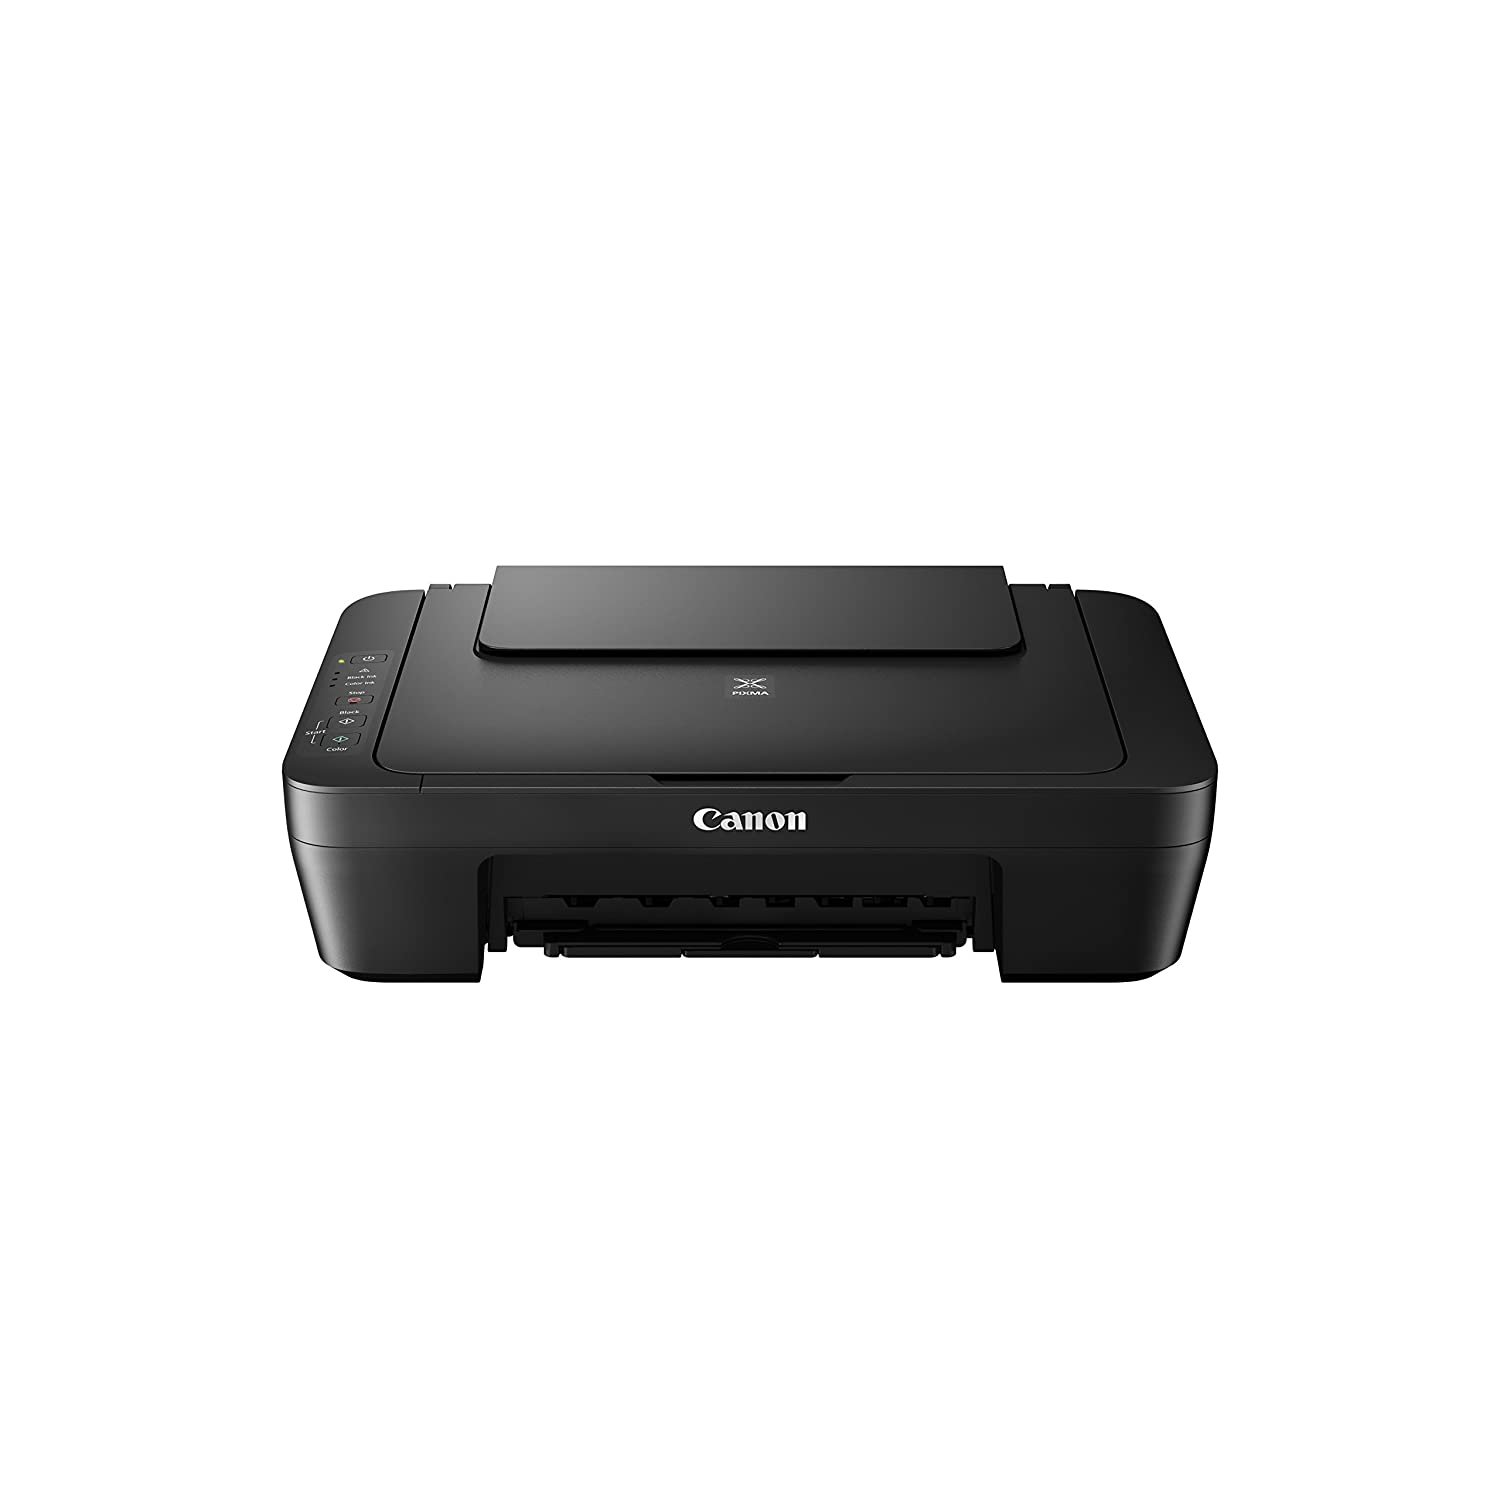 Canon Pixma Mg2525 Photo All In One Inkjet Printer W Scanner And Copier Black